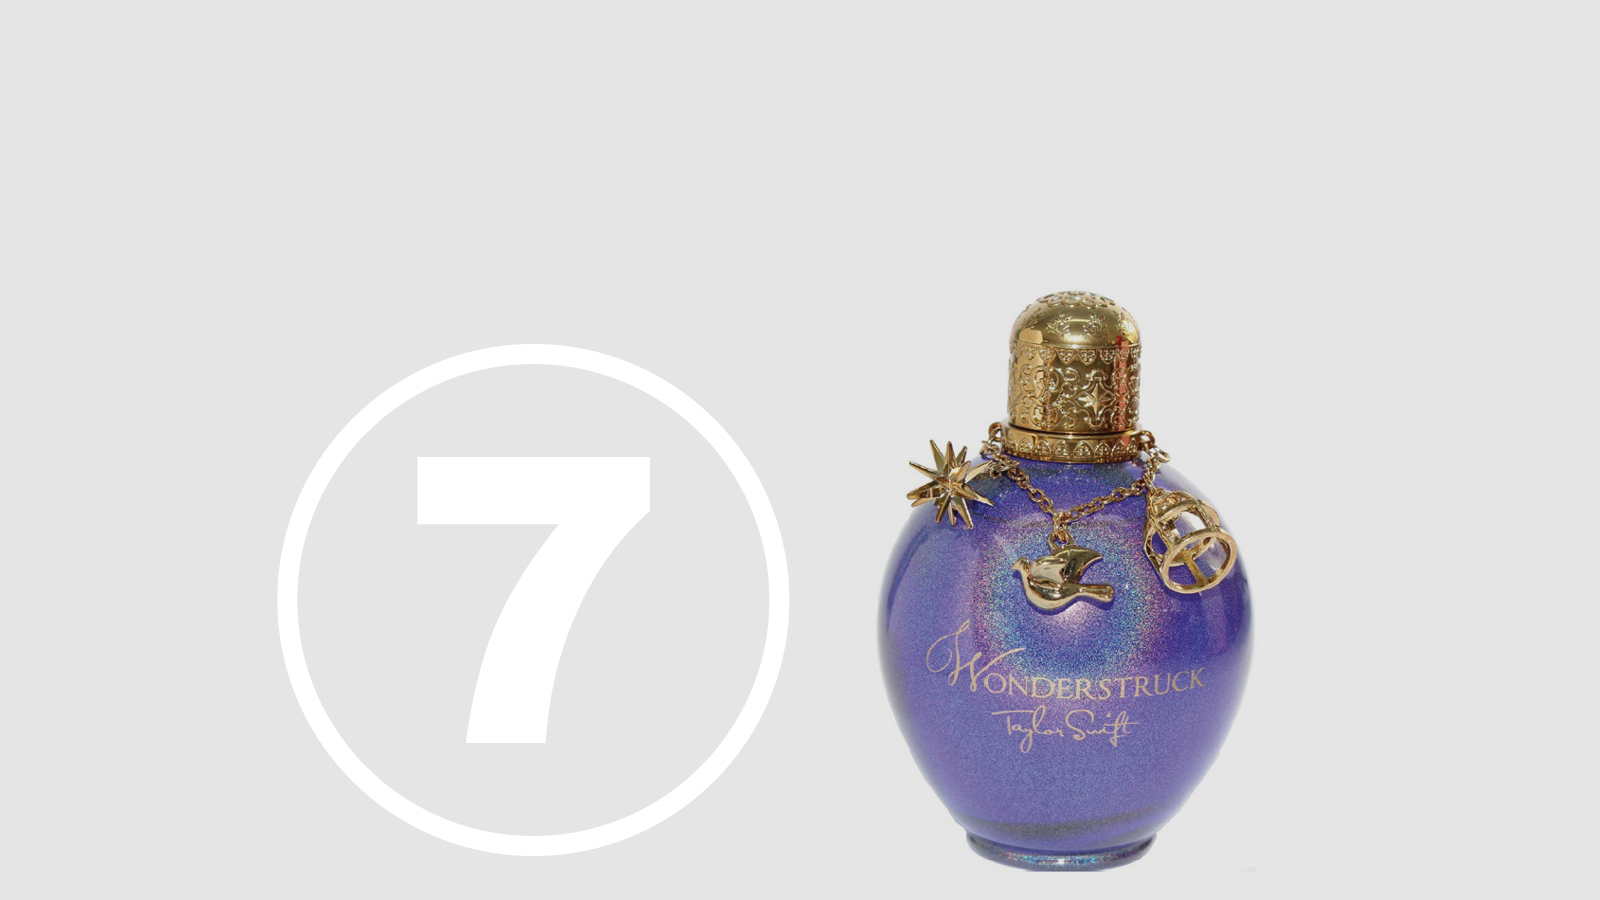 "<h5>Top Ten Most Hazardous Products</h5><h4>Taylor Swift Wonderstruck Perfume</h4><p>A Revlon fine fragrance endorsed by the beloved pop country singer Taylor Swift.<br />We found <span class=""highlight"">14 chemicals</span> chemicals linked to chronic health effects with <span class=""highlight"">92.9% hidden in ""fragrance.""</span></p>"